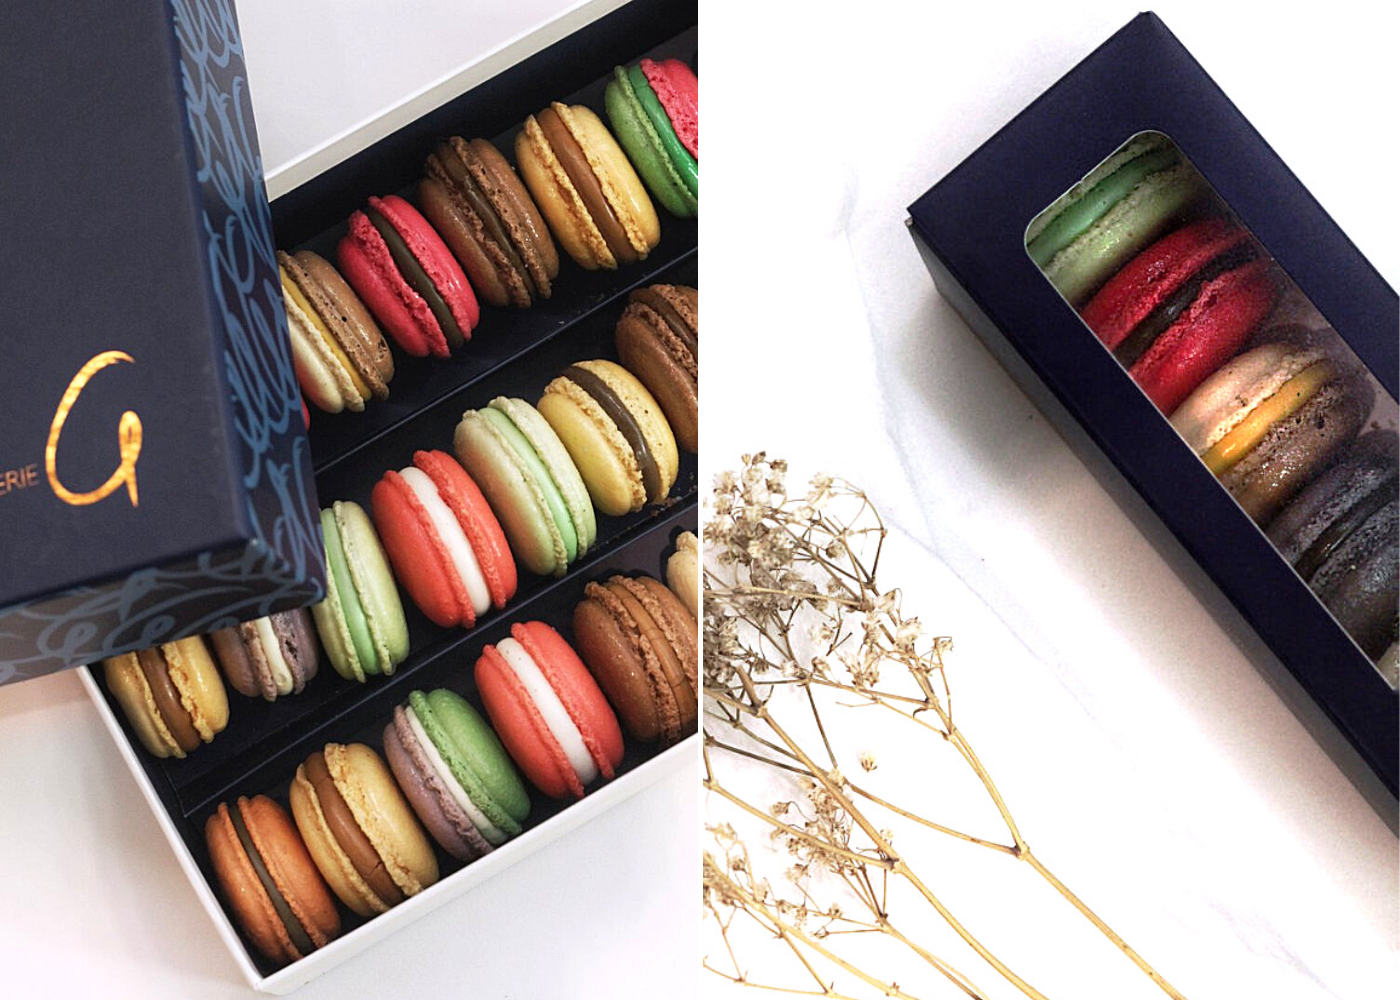 Best macarons in Singapore: Patisserie G